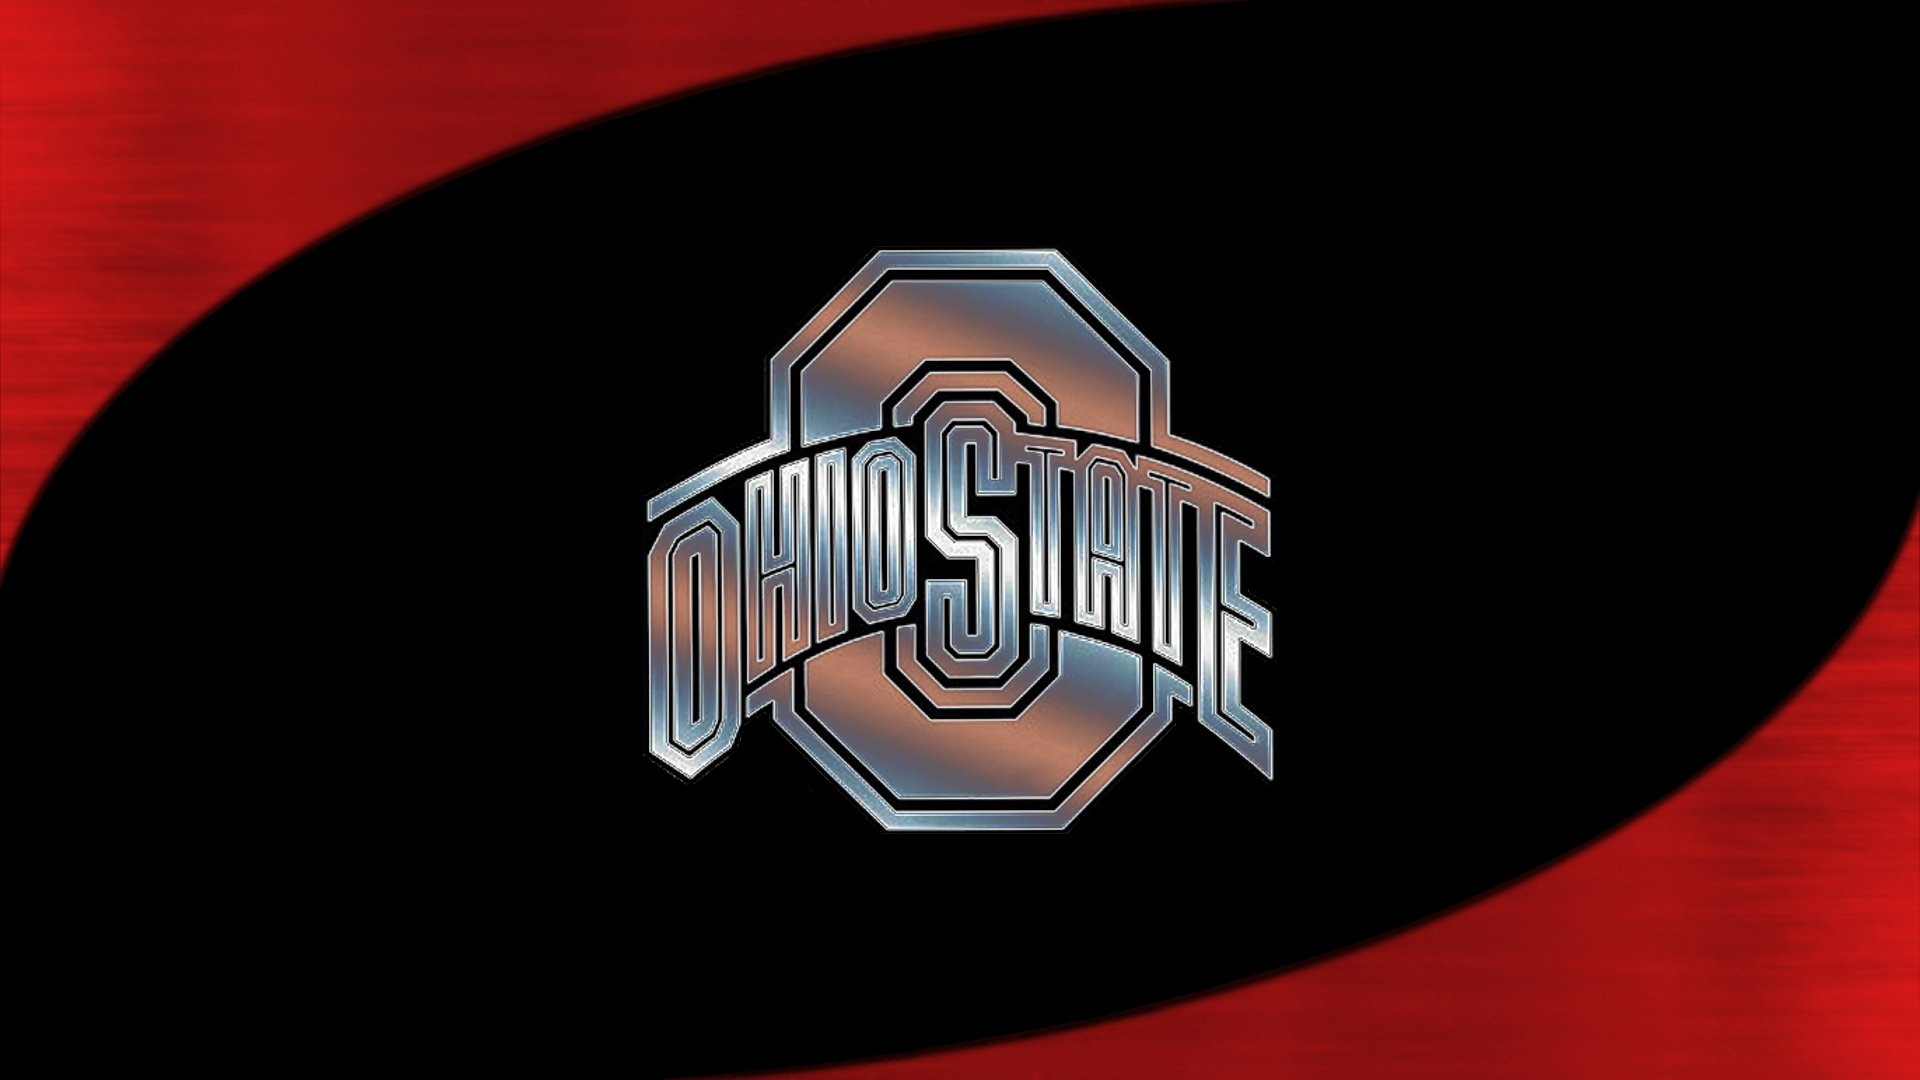 ohio state buckeyes images osu wallpaper 144 hd wallpaper and